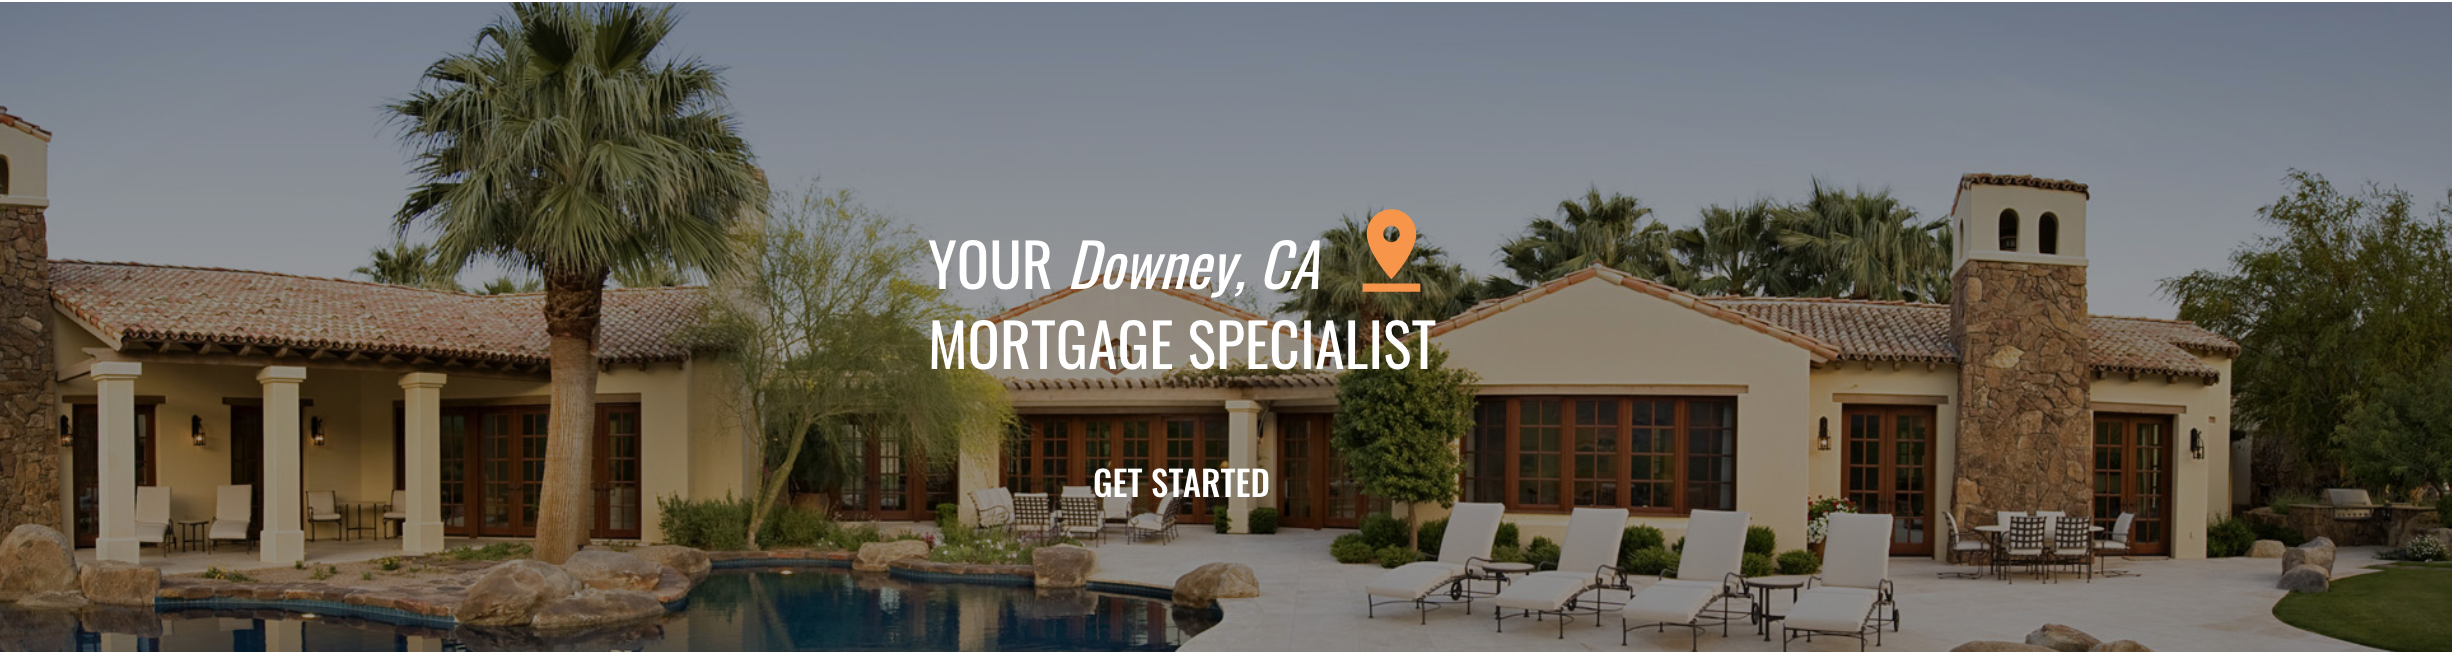 Home Central Financial - Home Loan Purchase, Refinance & Reverse Mortgage - Miguel, Downey